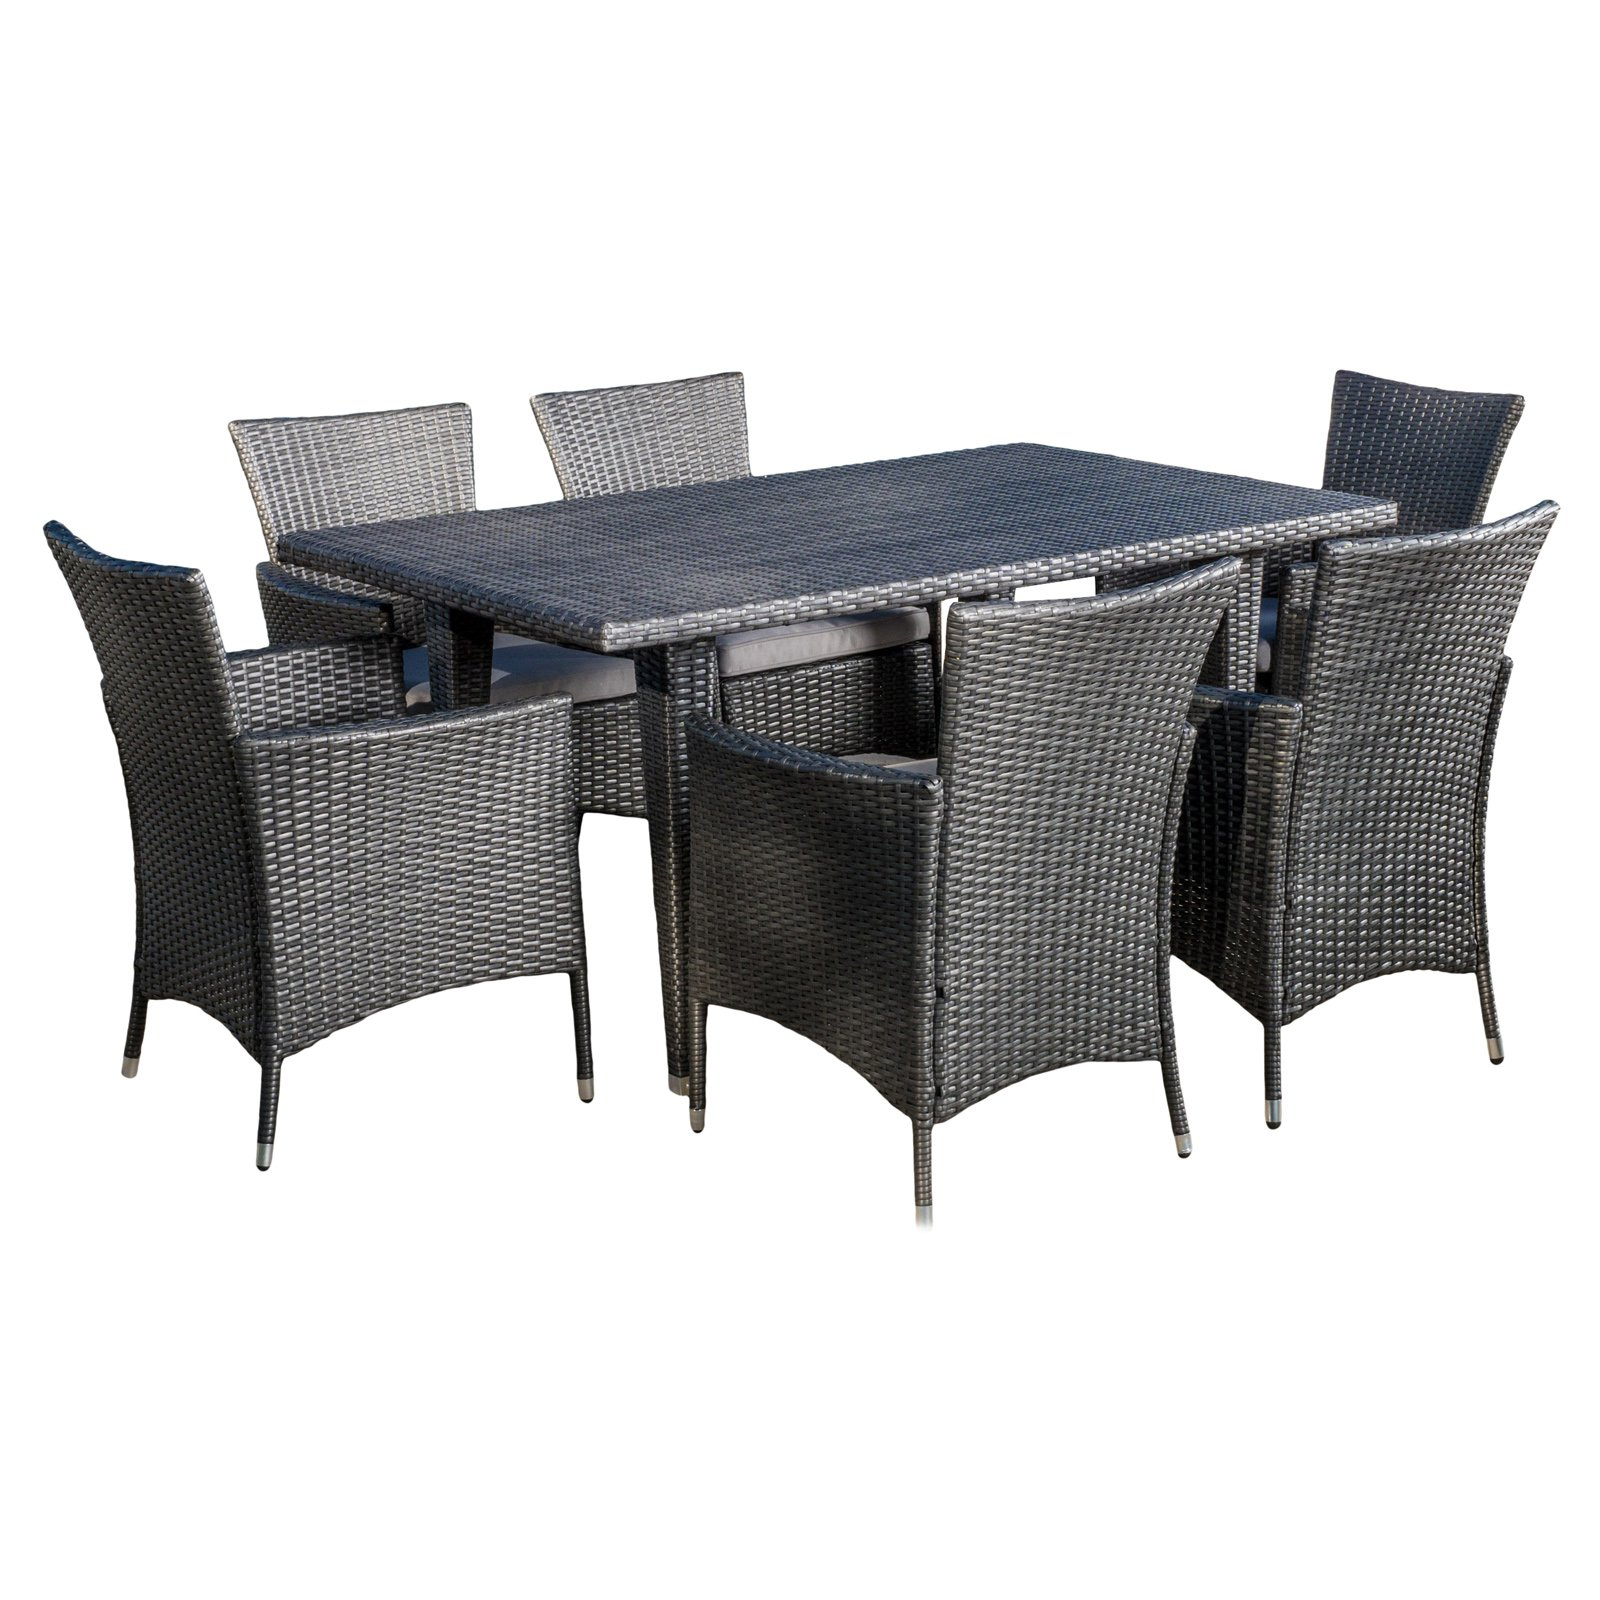 Best Selling Home Decor Furniture Isabel Wicker 7 Piece Rectangular Patio Dining Room Set... by